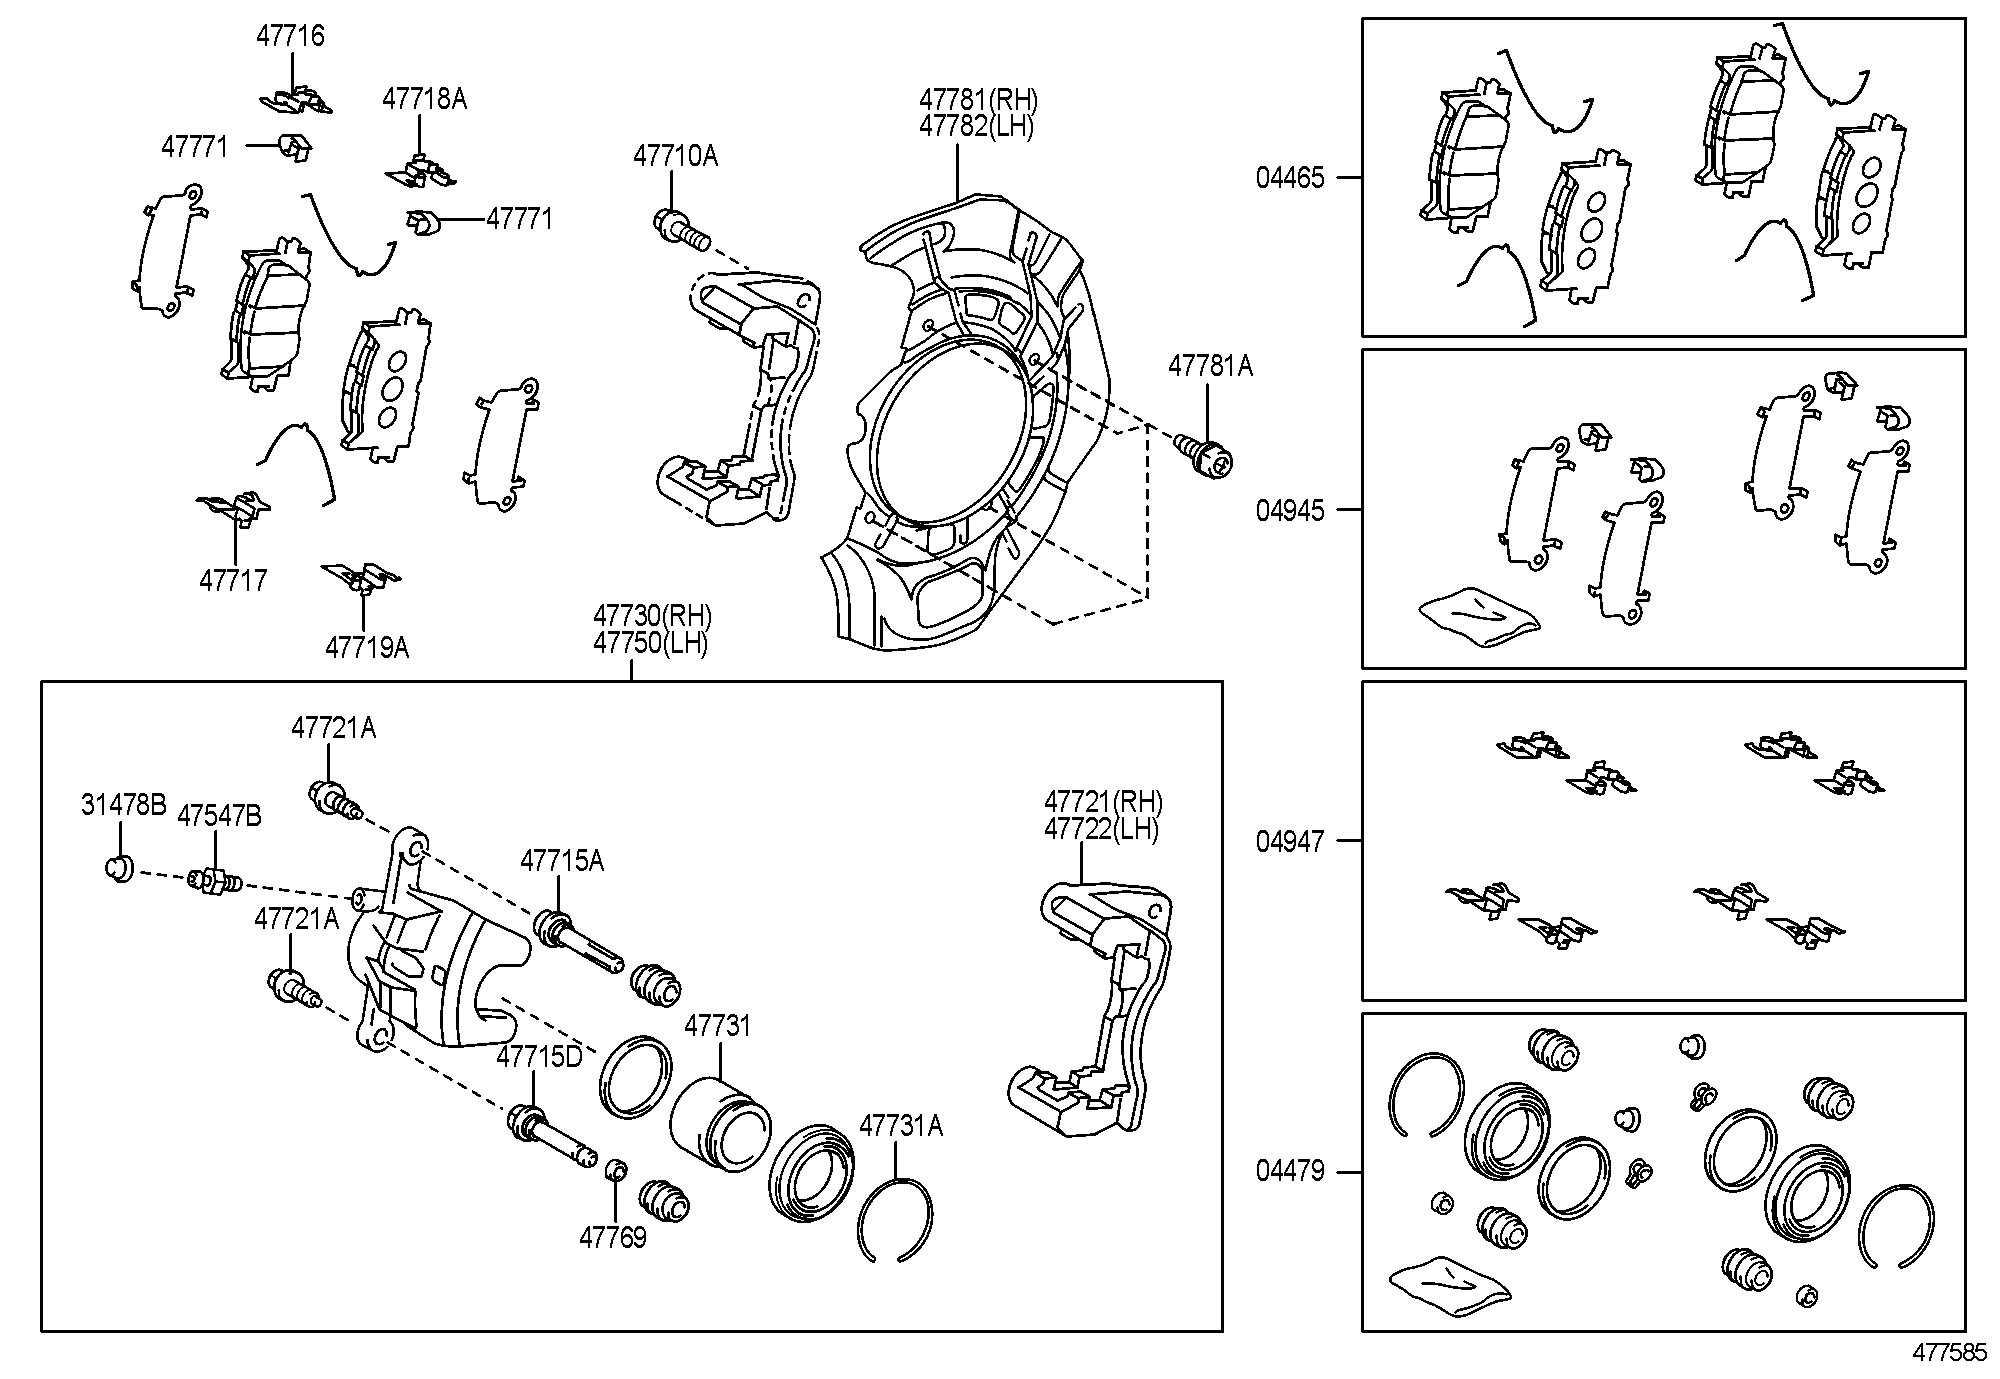 P 0900c152800611ee as well 477585 4705 284480 as well Land Rover Defender 4 Door moreover P 0996b43f80382c05 further Diagram view. on toyota 4runner caliper